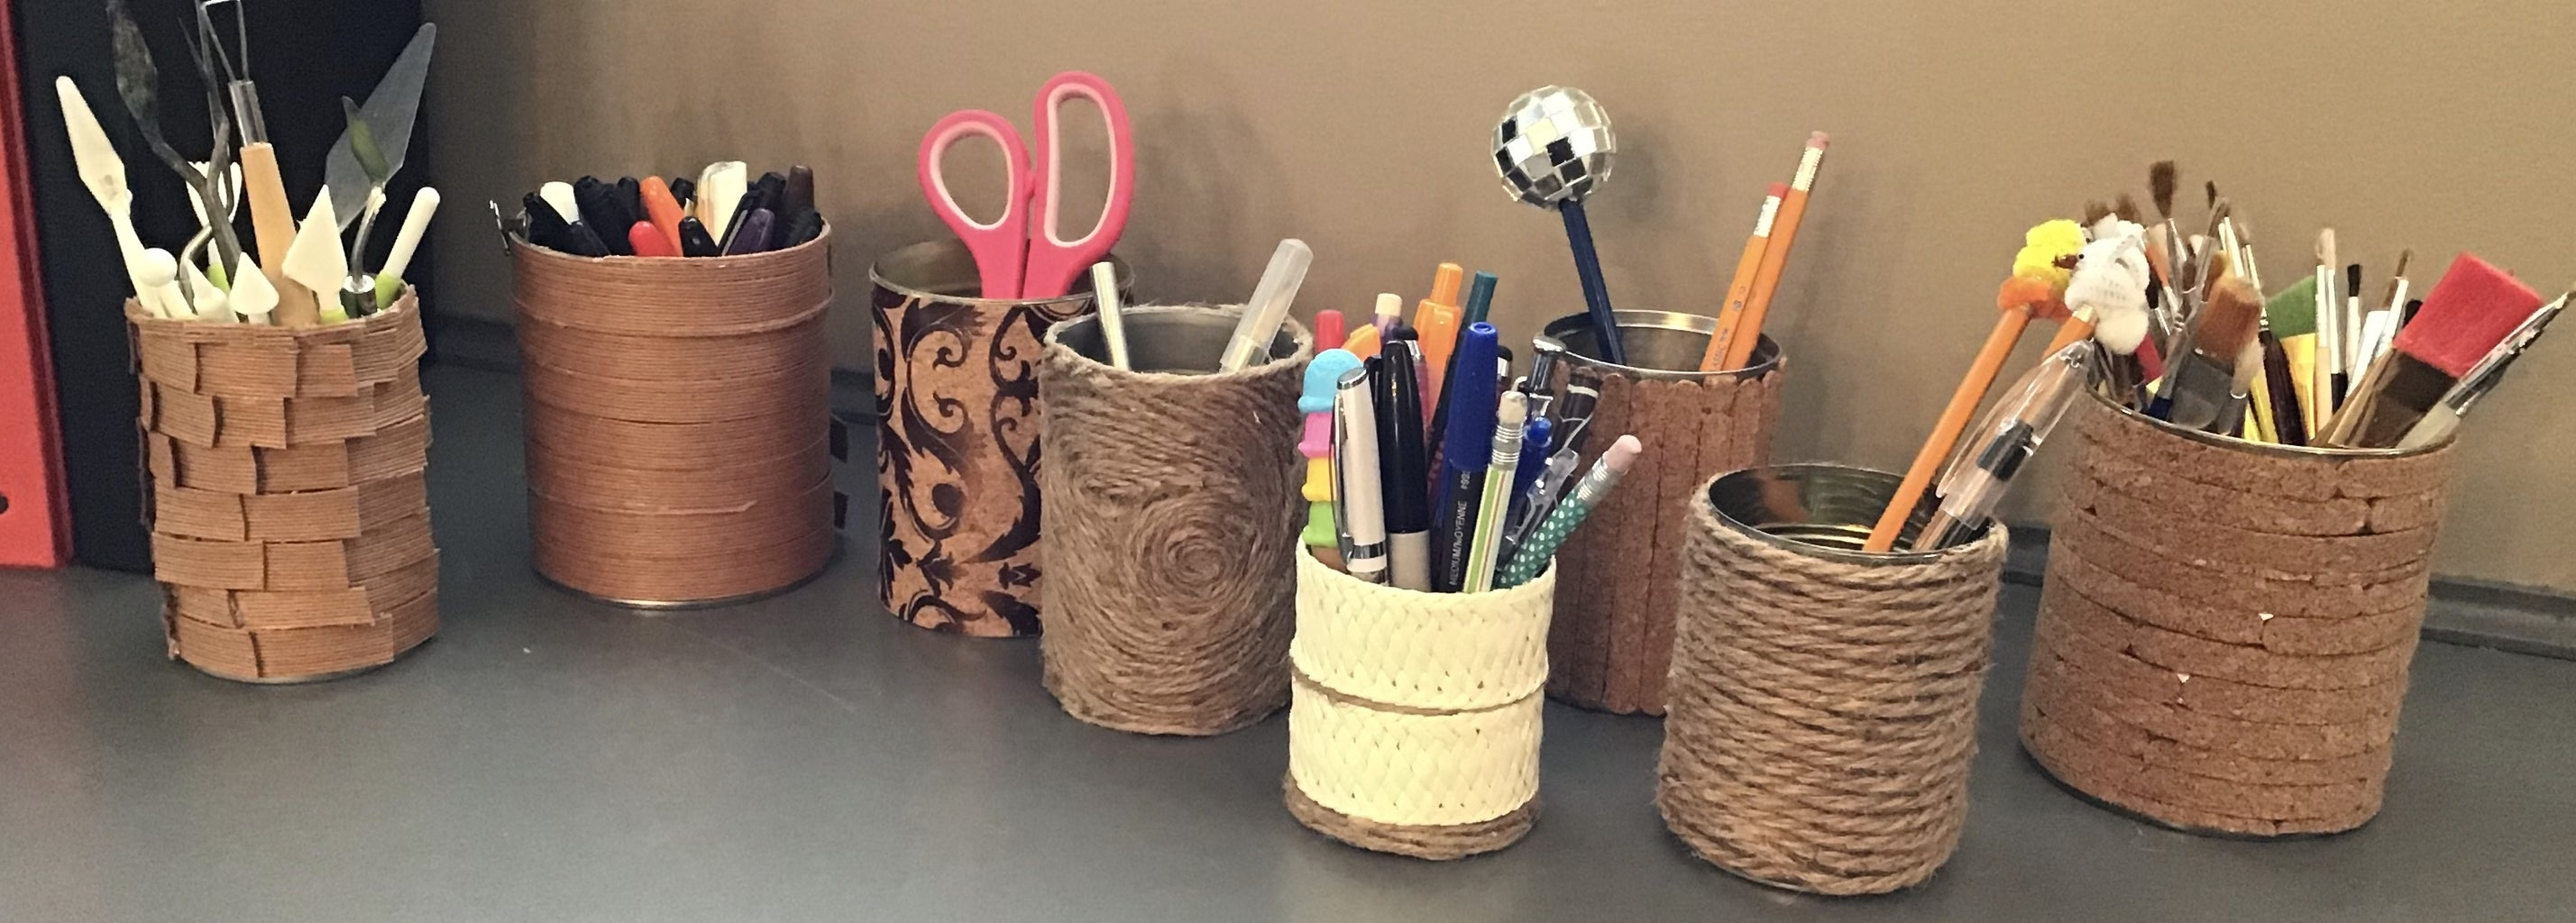 Upcycled Pen/Pencil Holder ....